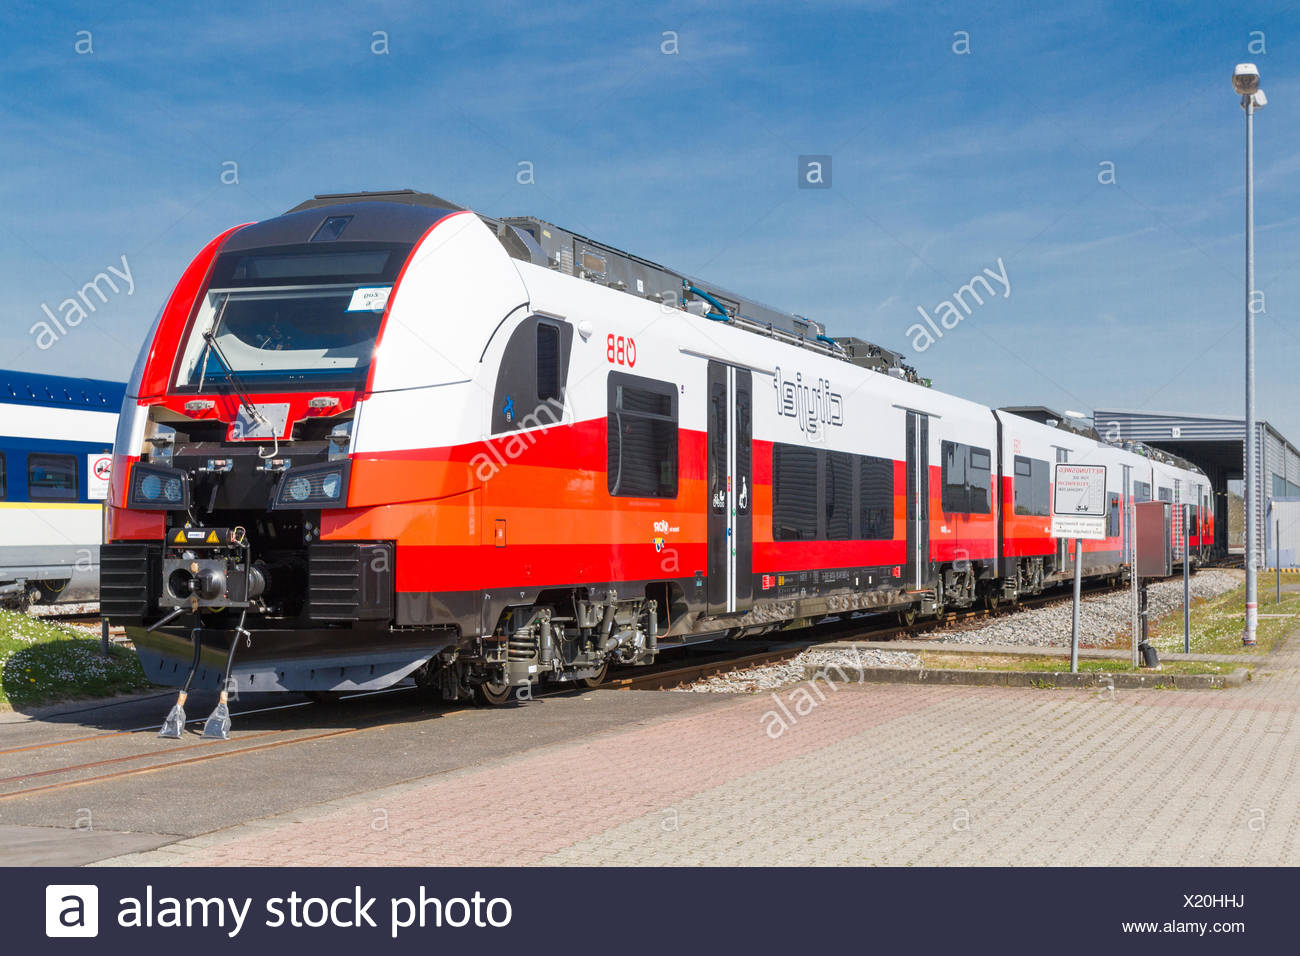 Uerdingen Stock Photos & Uerdingen Stock Images - Alamy